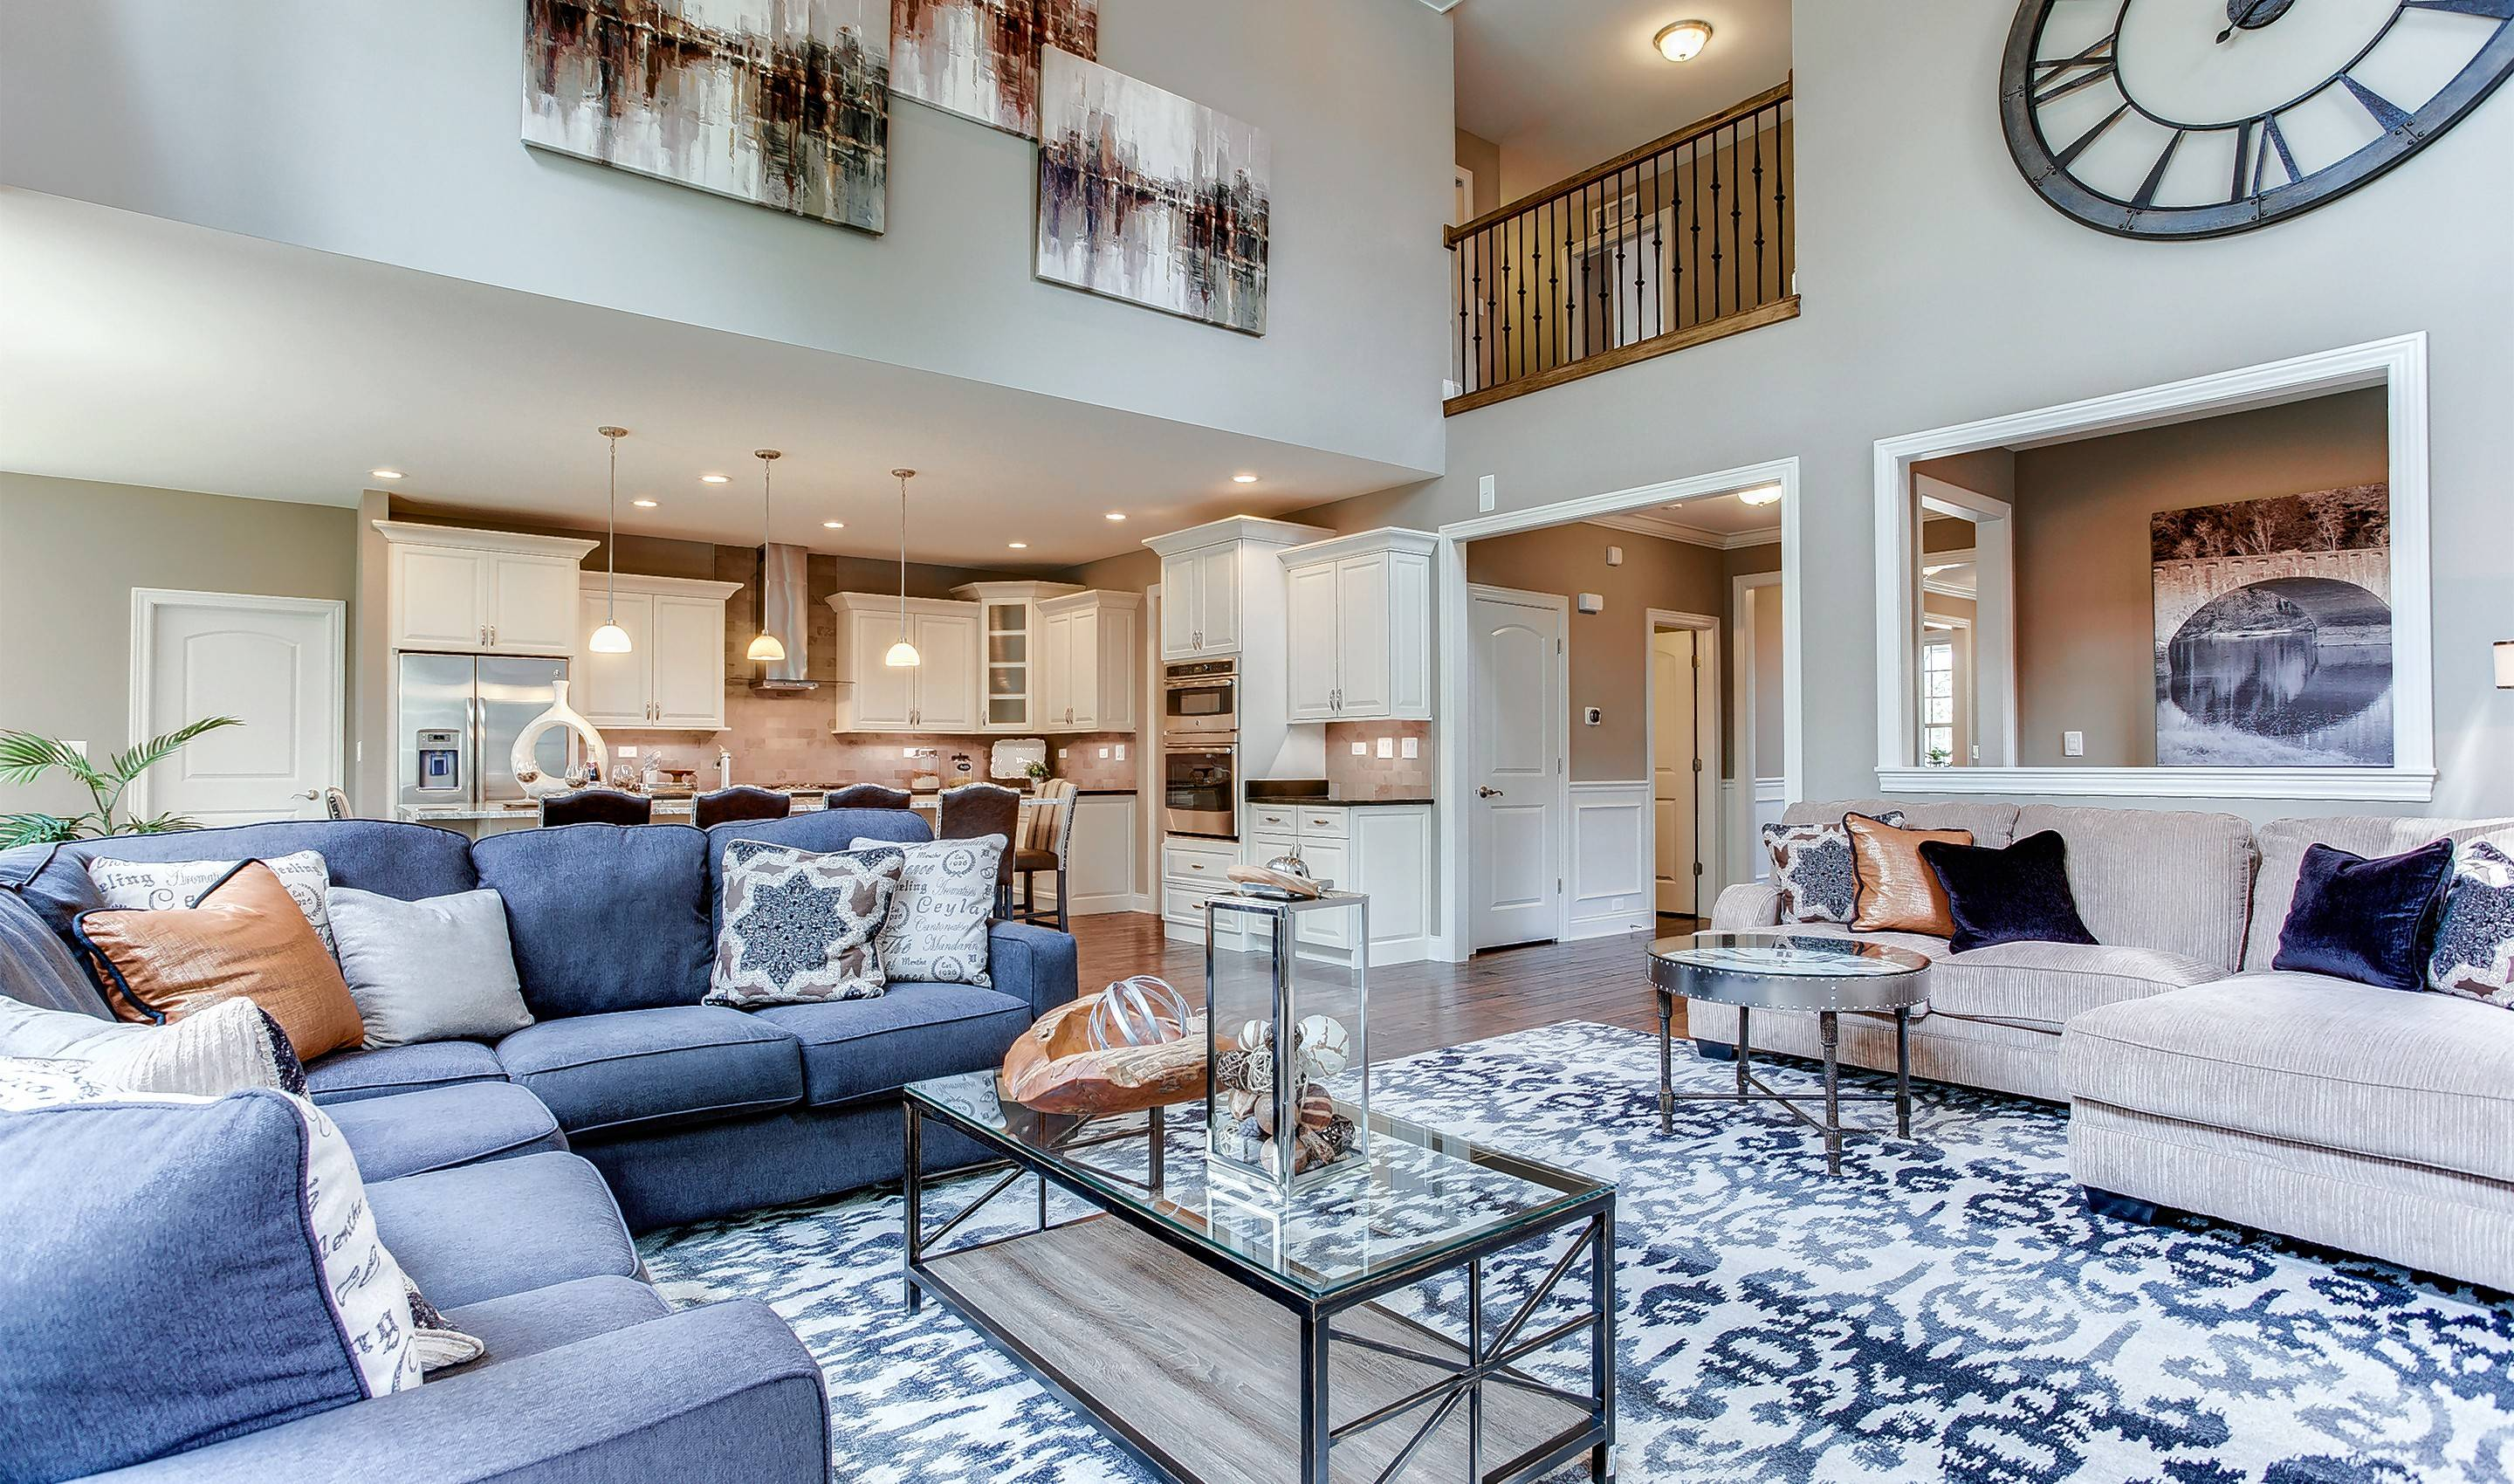 K Hovnanian Homes Stays In Step With Todays Style